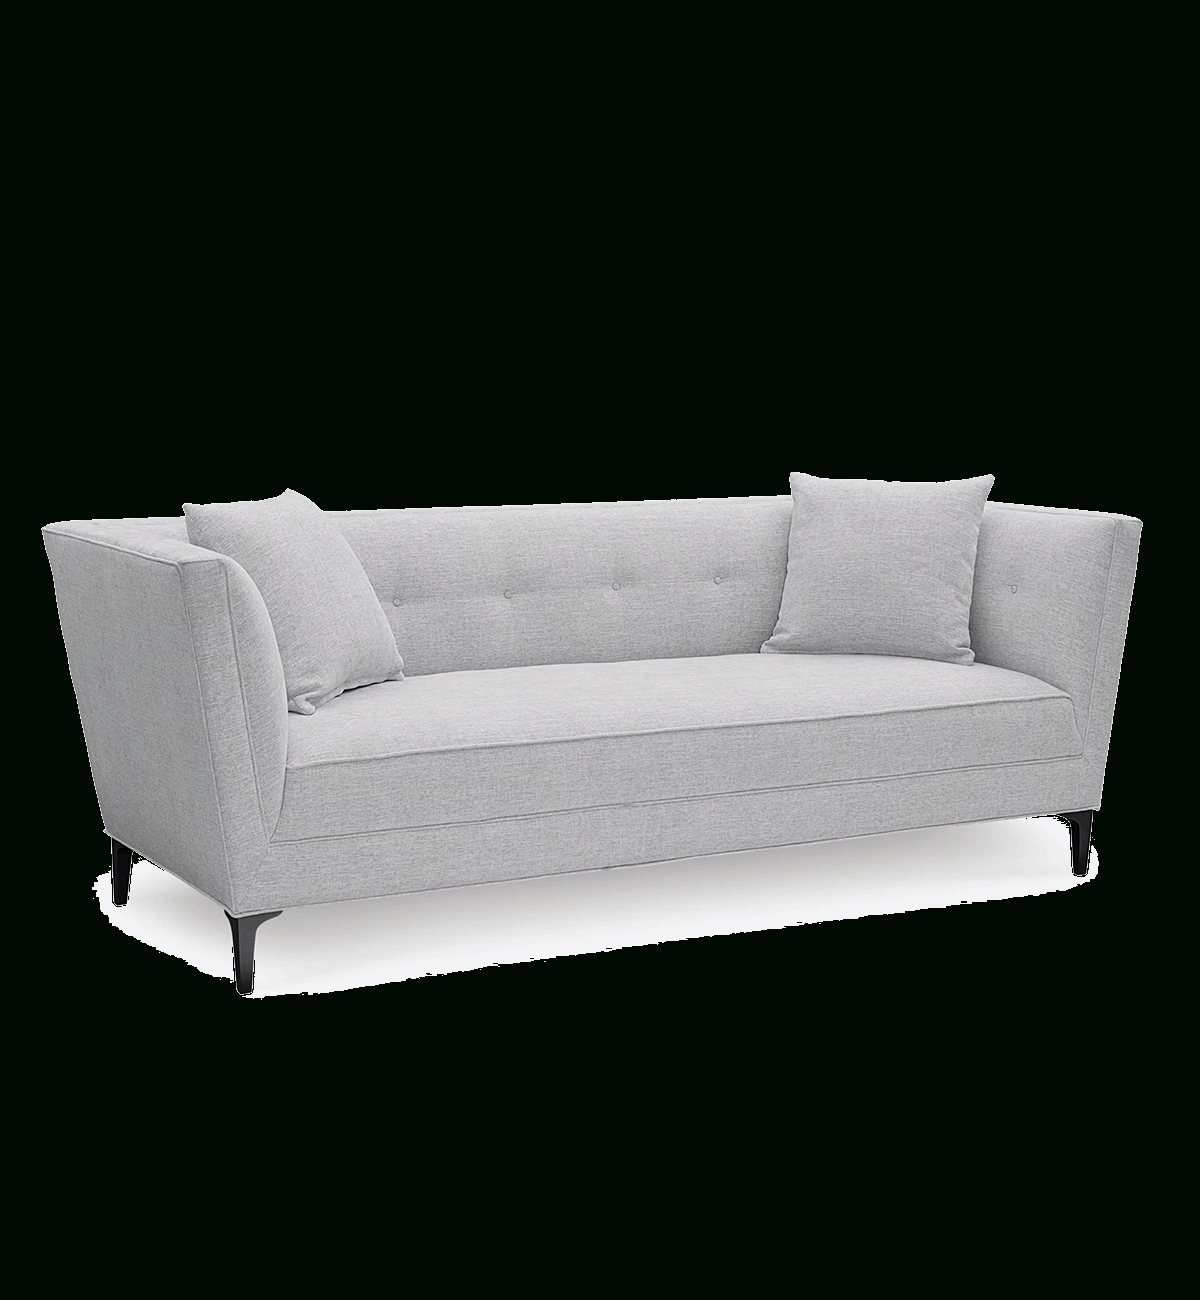 Leather Couches And Sofas – Macy's Regarding Macys Leather Sofas (View 1 of 10)